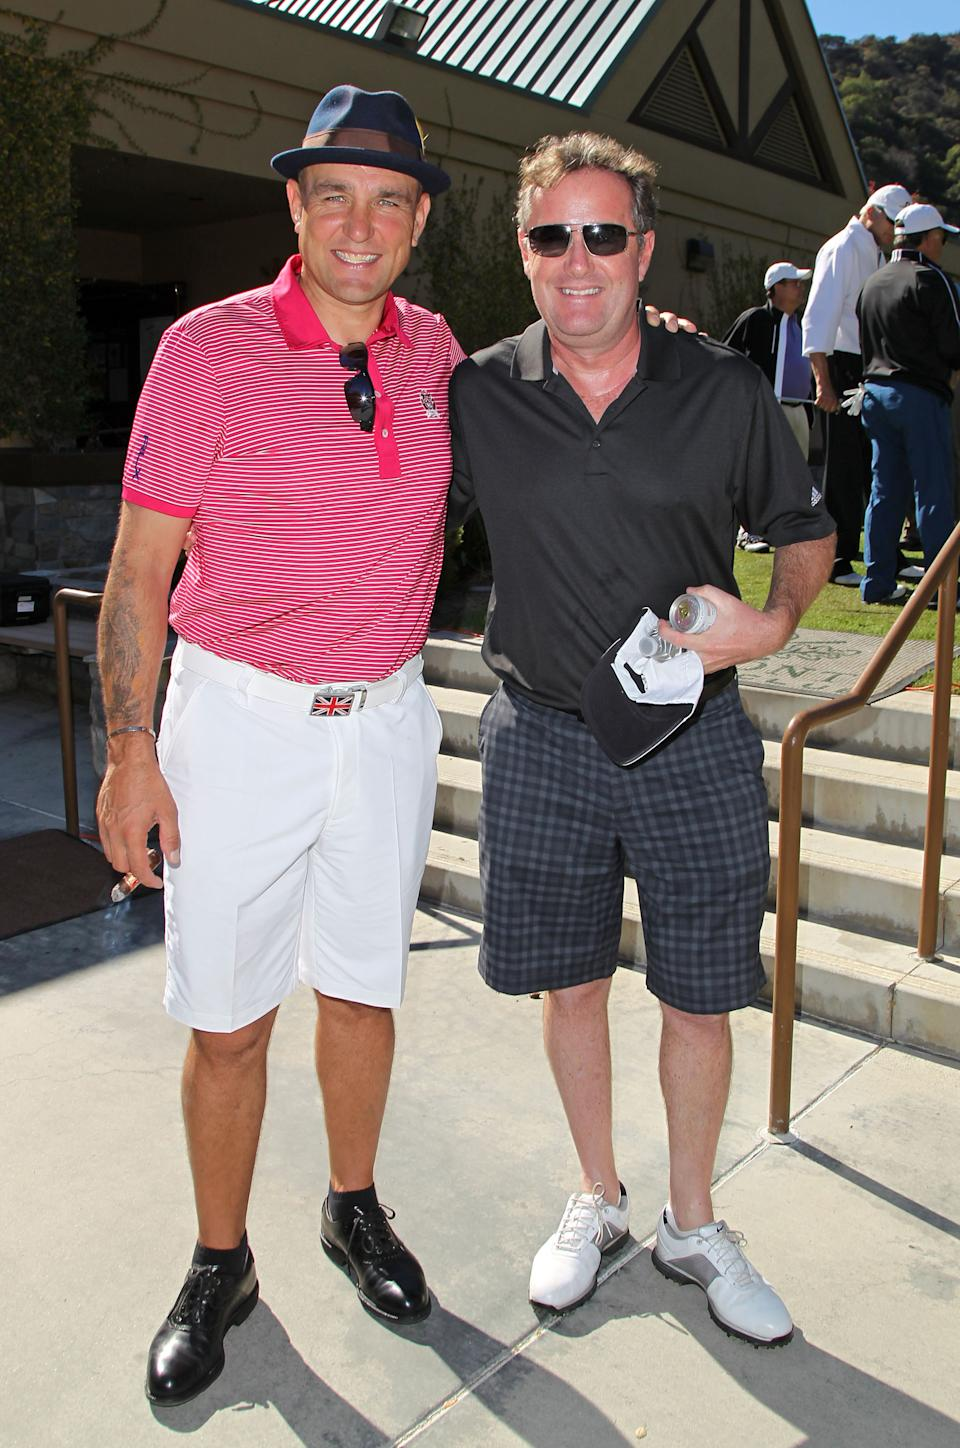 Vinnie Jones and Piers Morgan at the BAFTA LA Celebrity Golf Classic at Oakmont Country Club on November 3, 2014 in Glendale, California. (Photo by David Buchan/Getty Images for BAFTA LA)